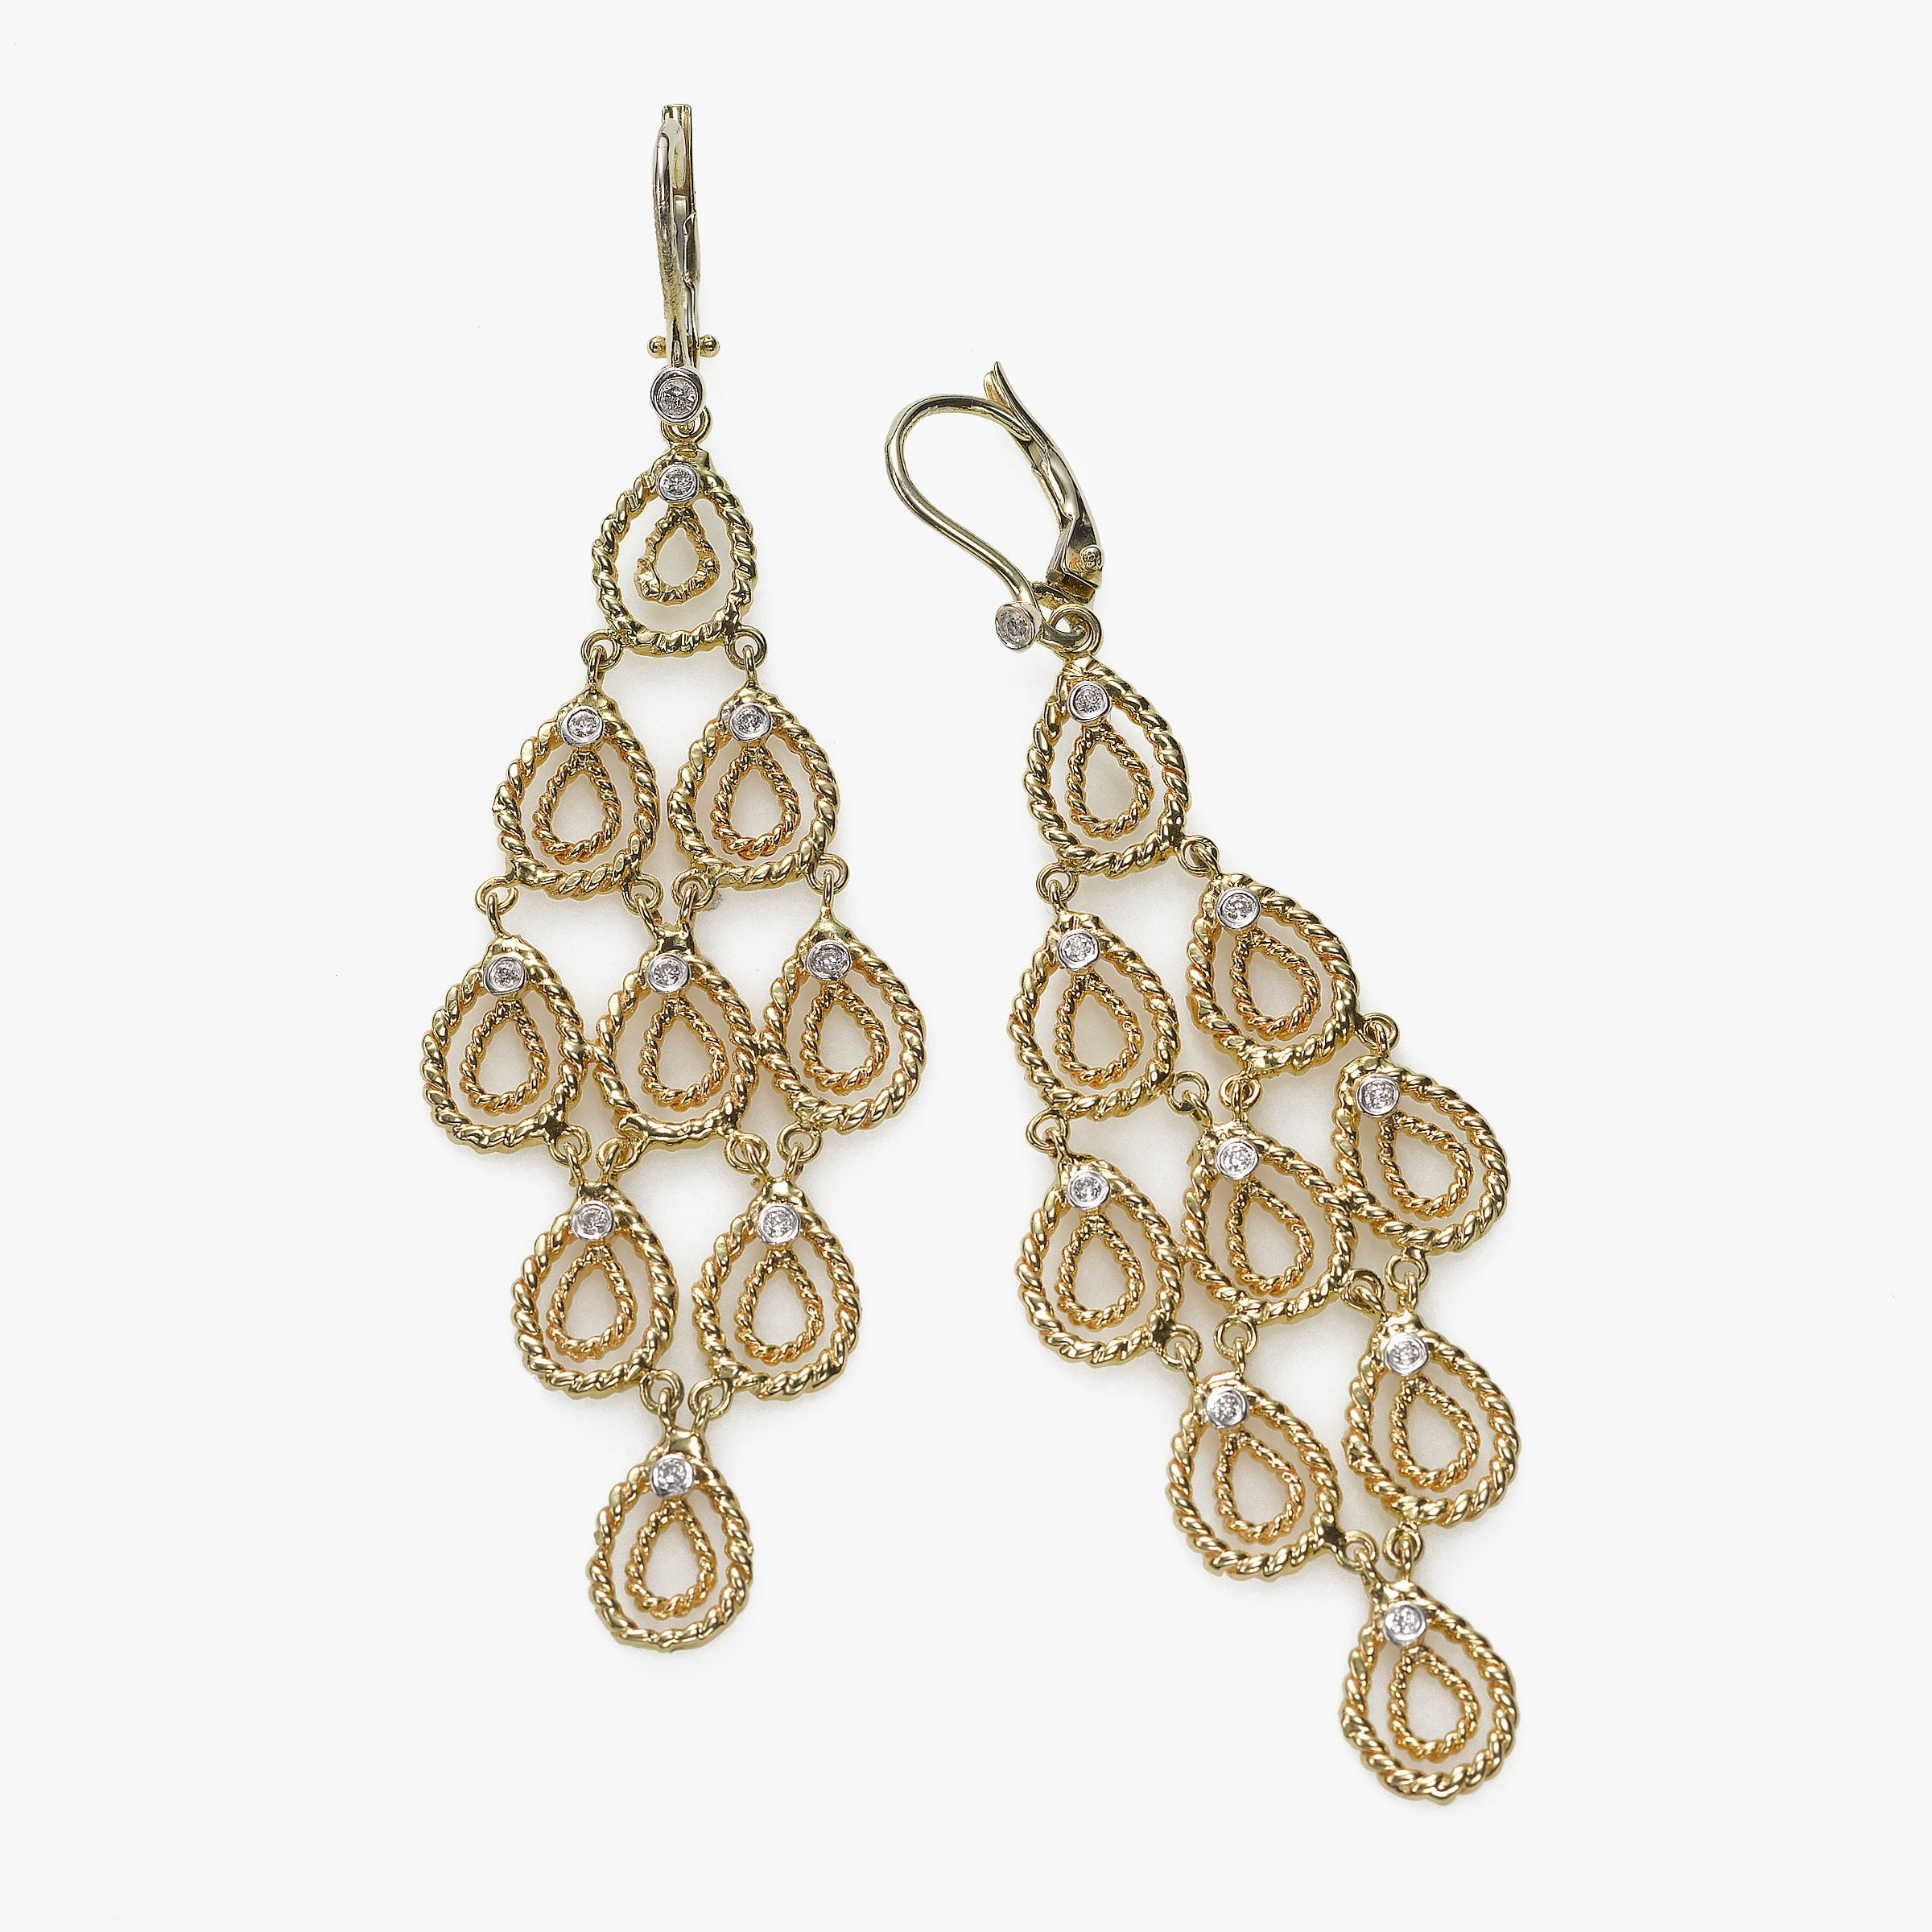 Gold Silhouette Chandelier Earrings, Diamond Accent, 3 Inches, 14K Yellow Gold